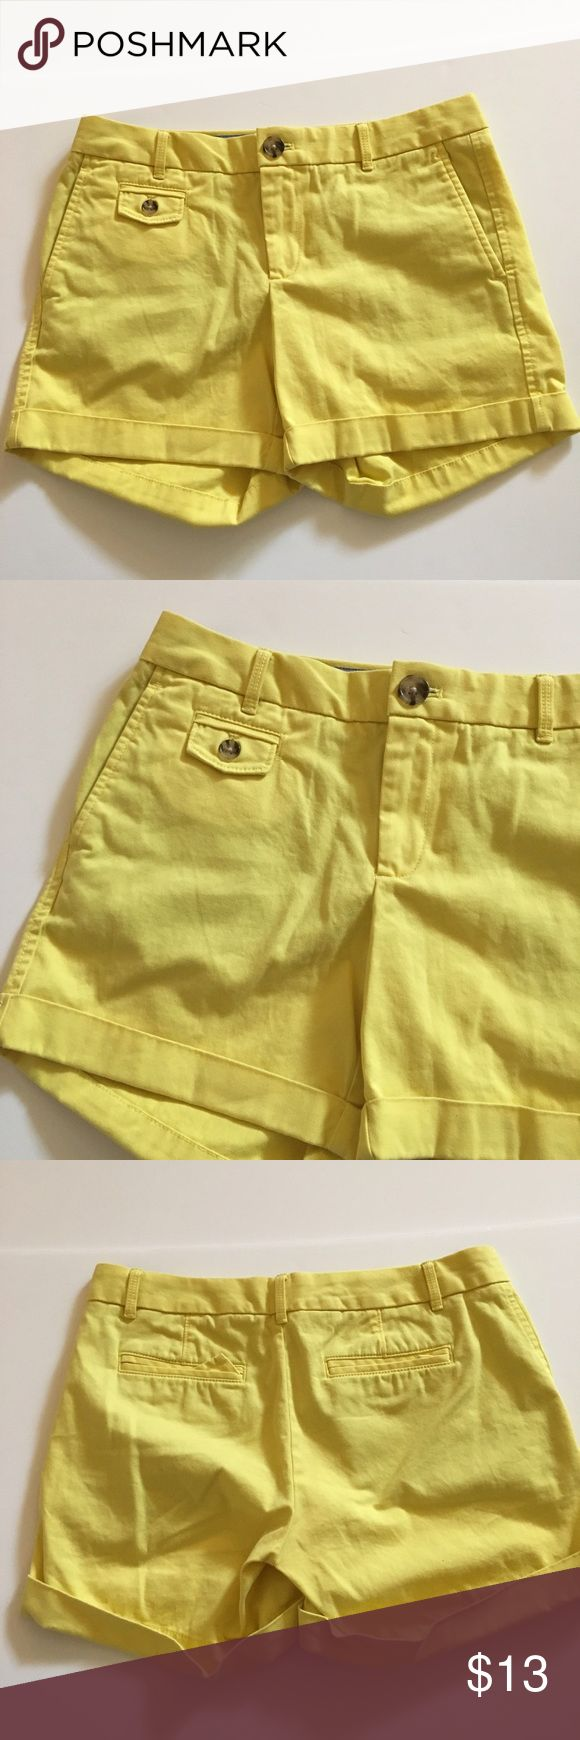 Banana Republic City Chino Yellow Shorts Size 2 Banana Republic City Chino Yellow Cuffed Shorts Size 2 Excellent condition! They are slightly more of a pale yellow than what the pictures show 98% cotton 2% spandex Waist: 15 1/2 inches Rise: 7 3/4 inches Inseam: 5 inches Banana Republic Shorts